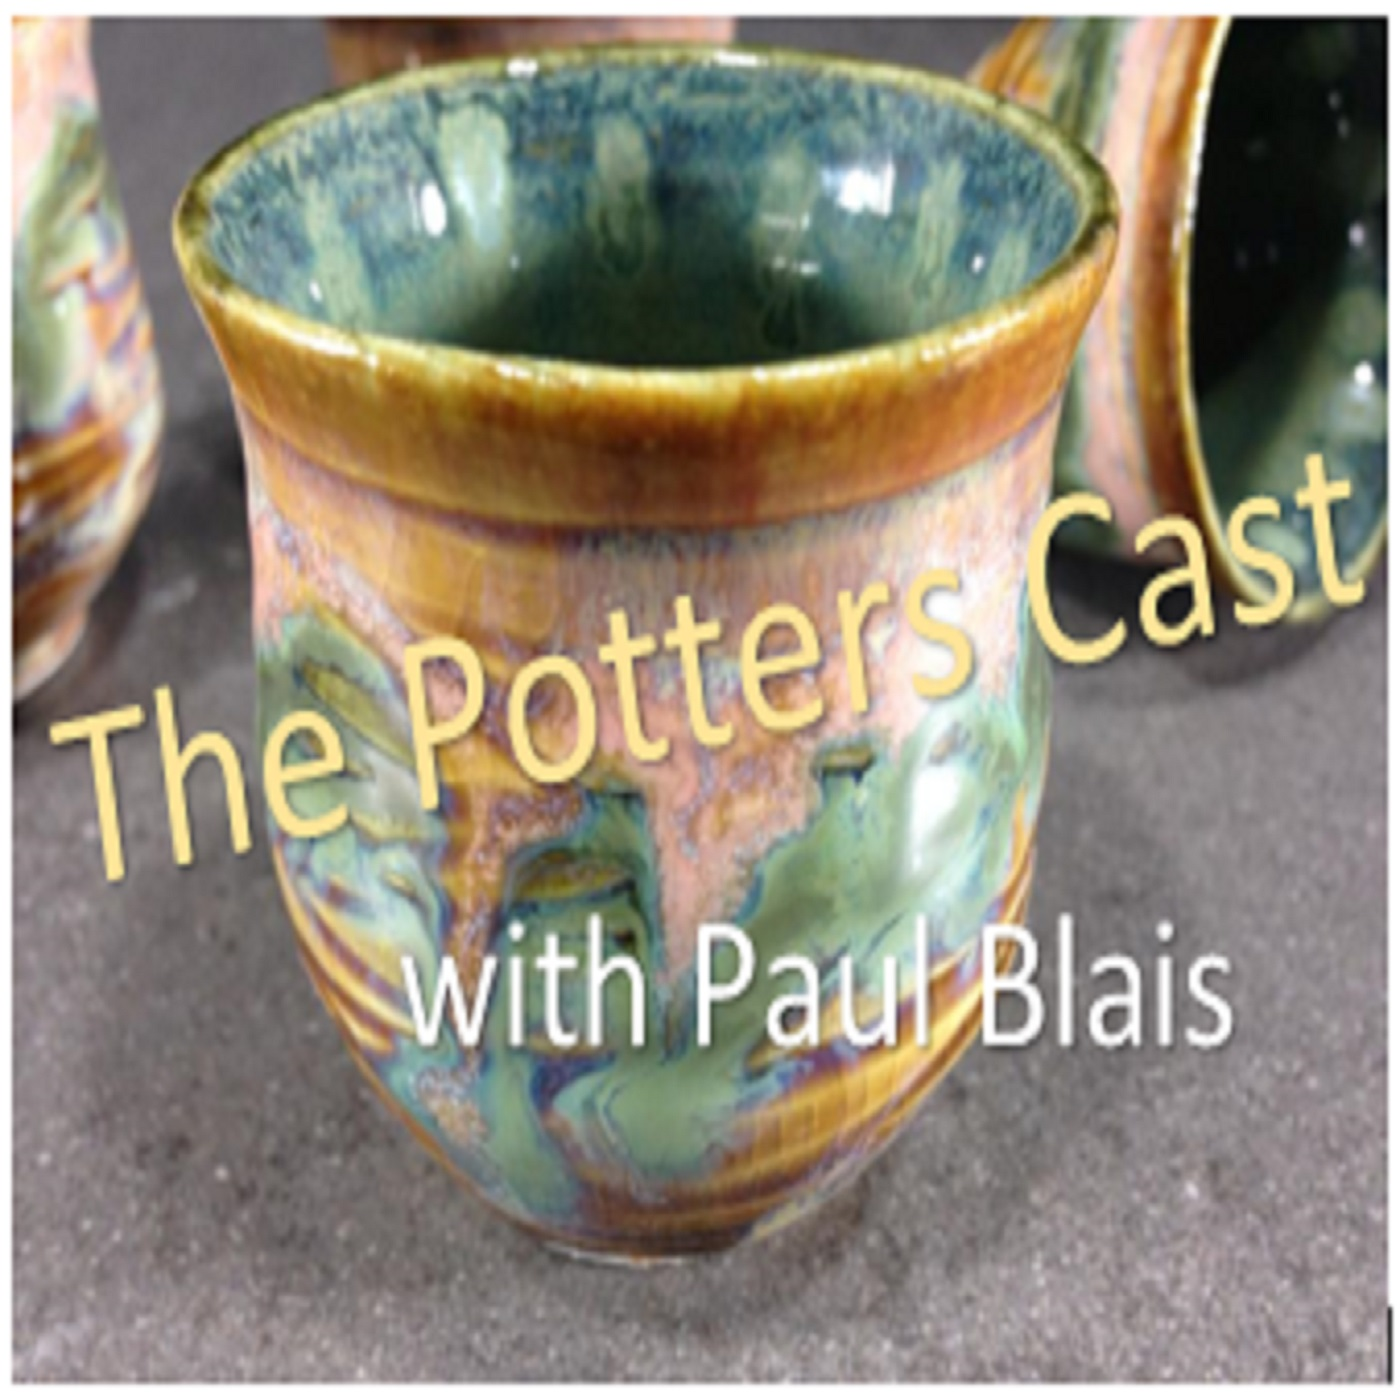 The Potters Cast.jpg